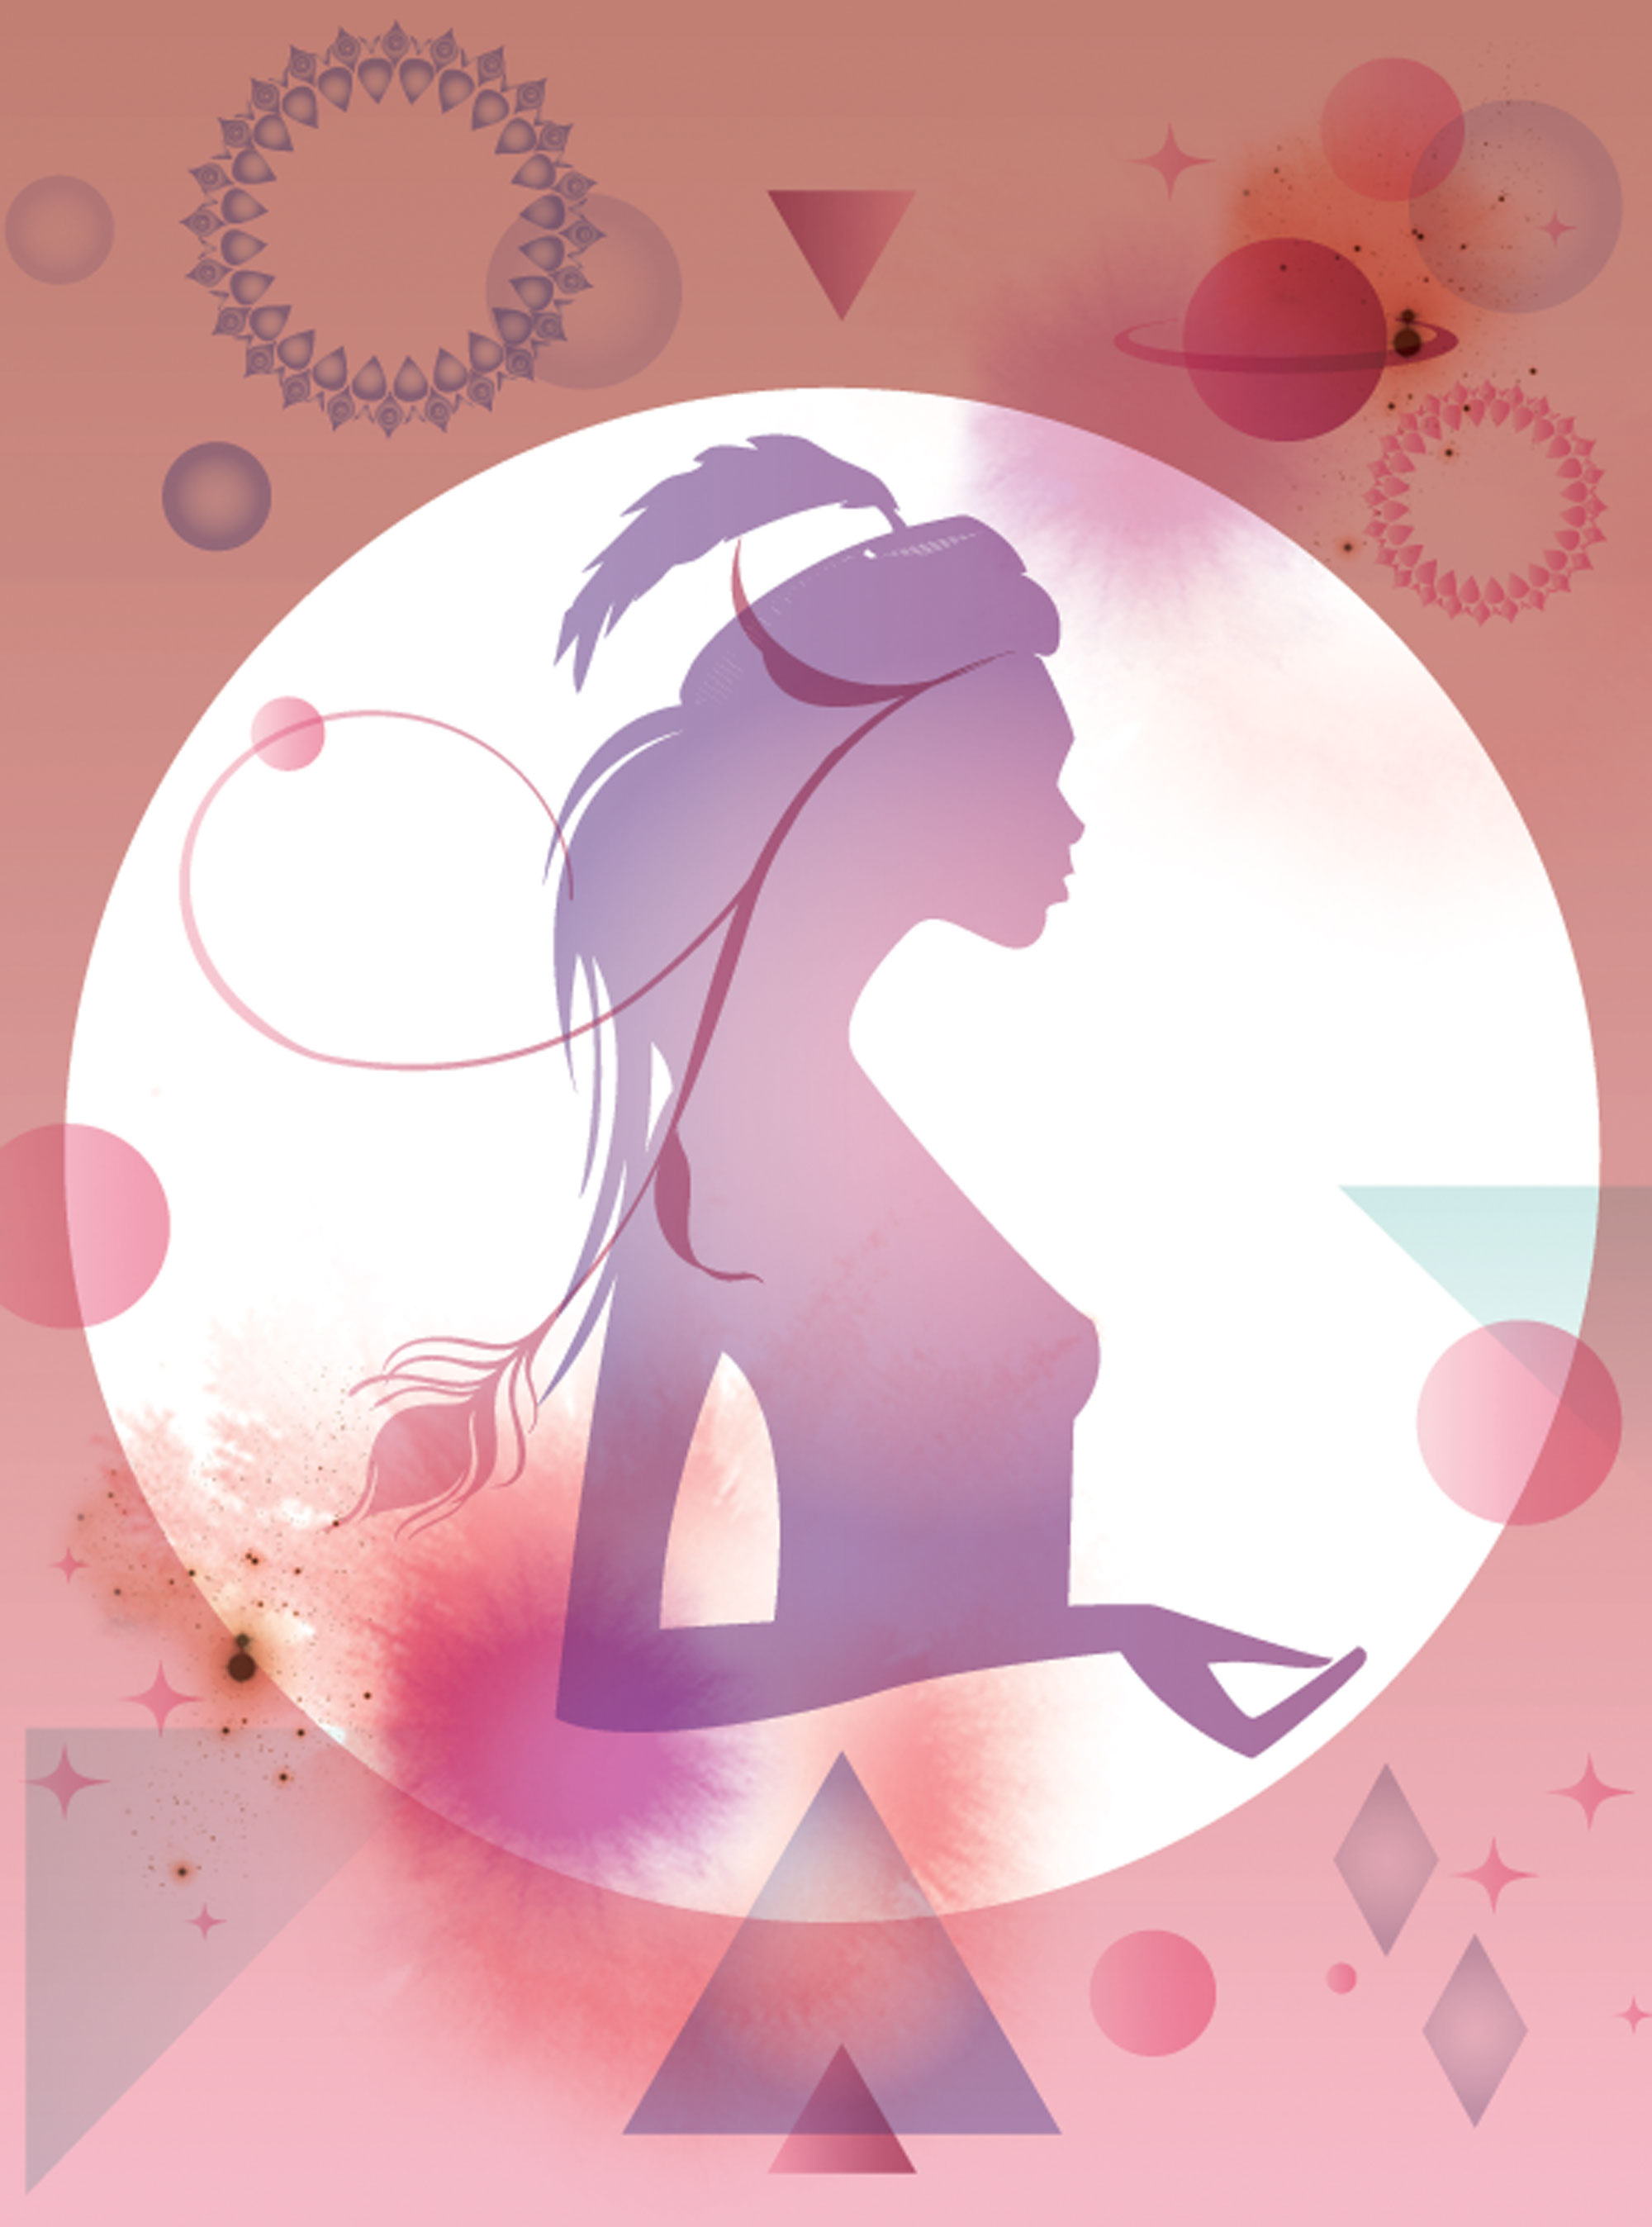 Weekly Horoscope: Virgo star sign